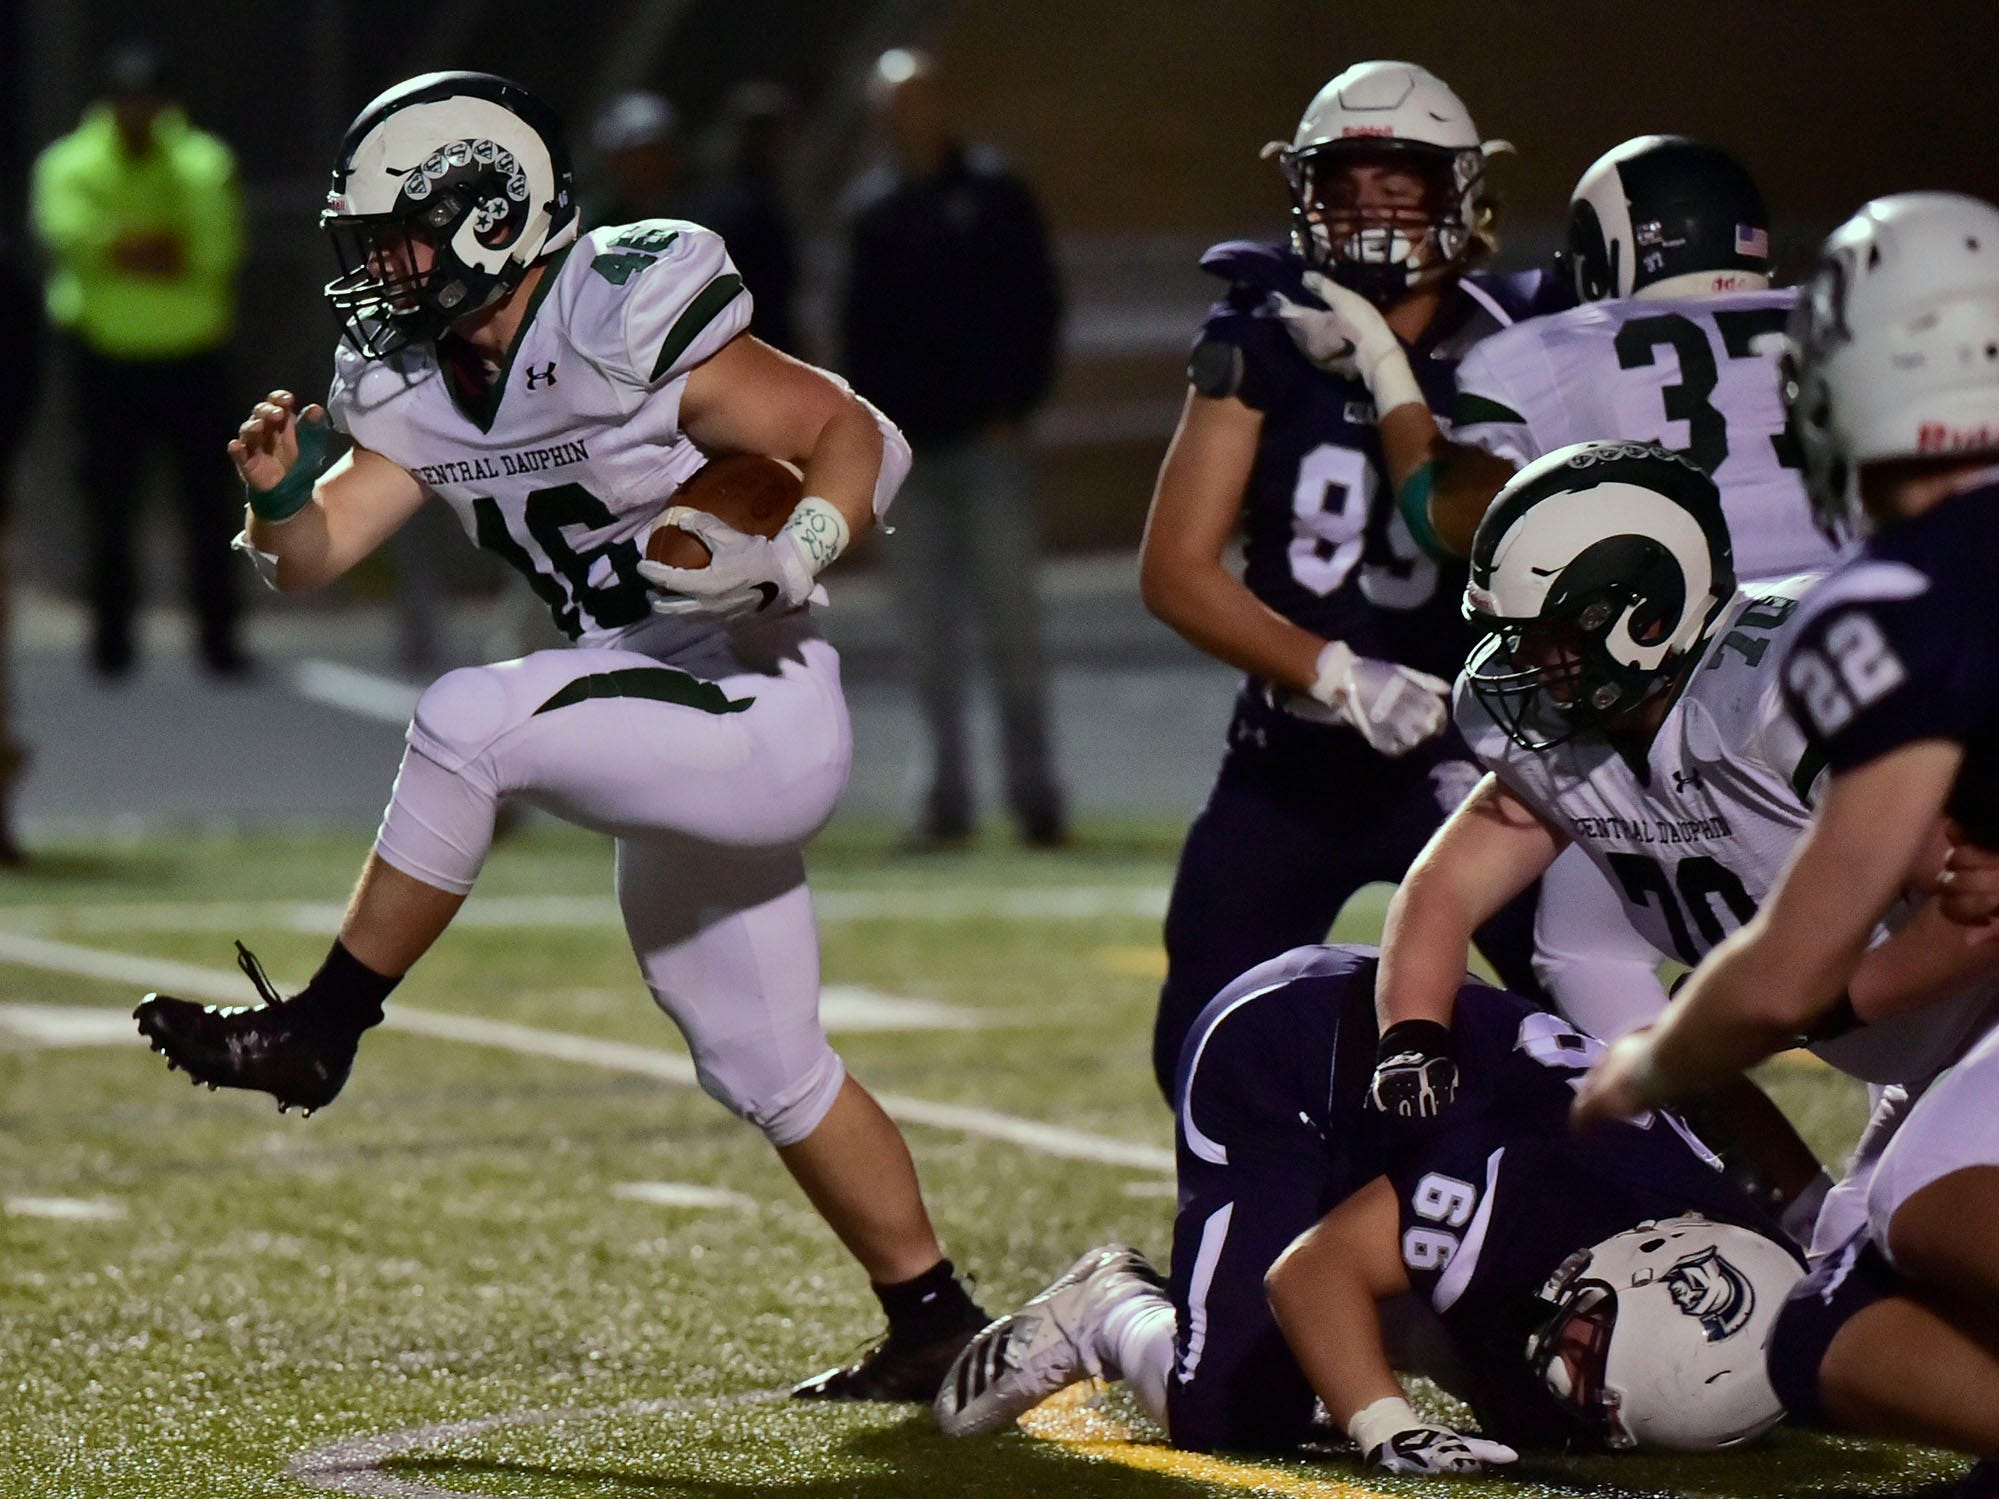 Central Dauphin's Adam Burkhart (46) powers past Chambersburg defenders. Chambersburg lost to Central Dauphin 35-14 in PIAA football on Friday, Oct. 19, 2018.